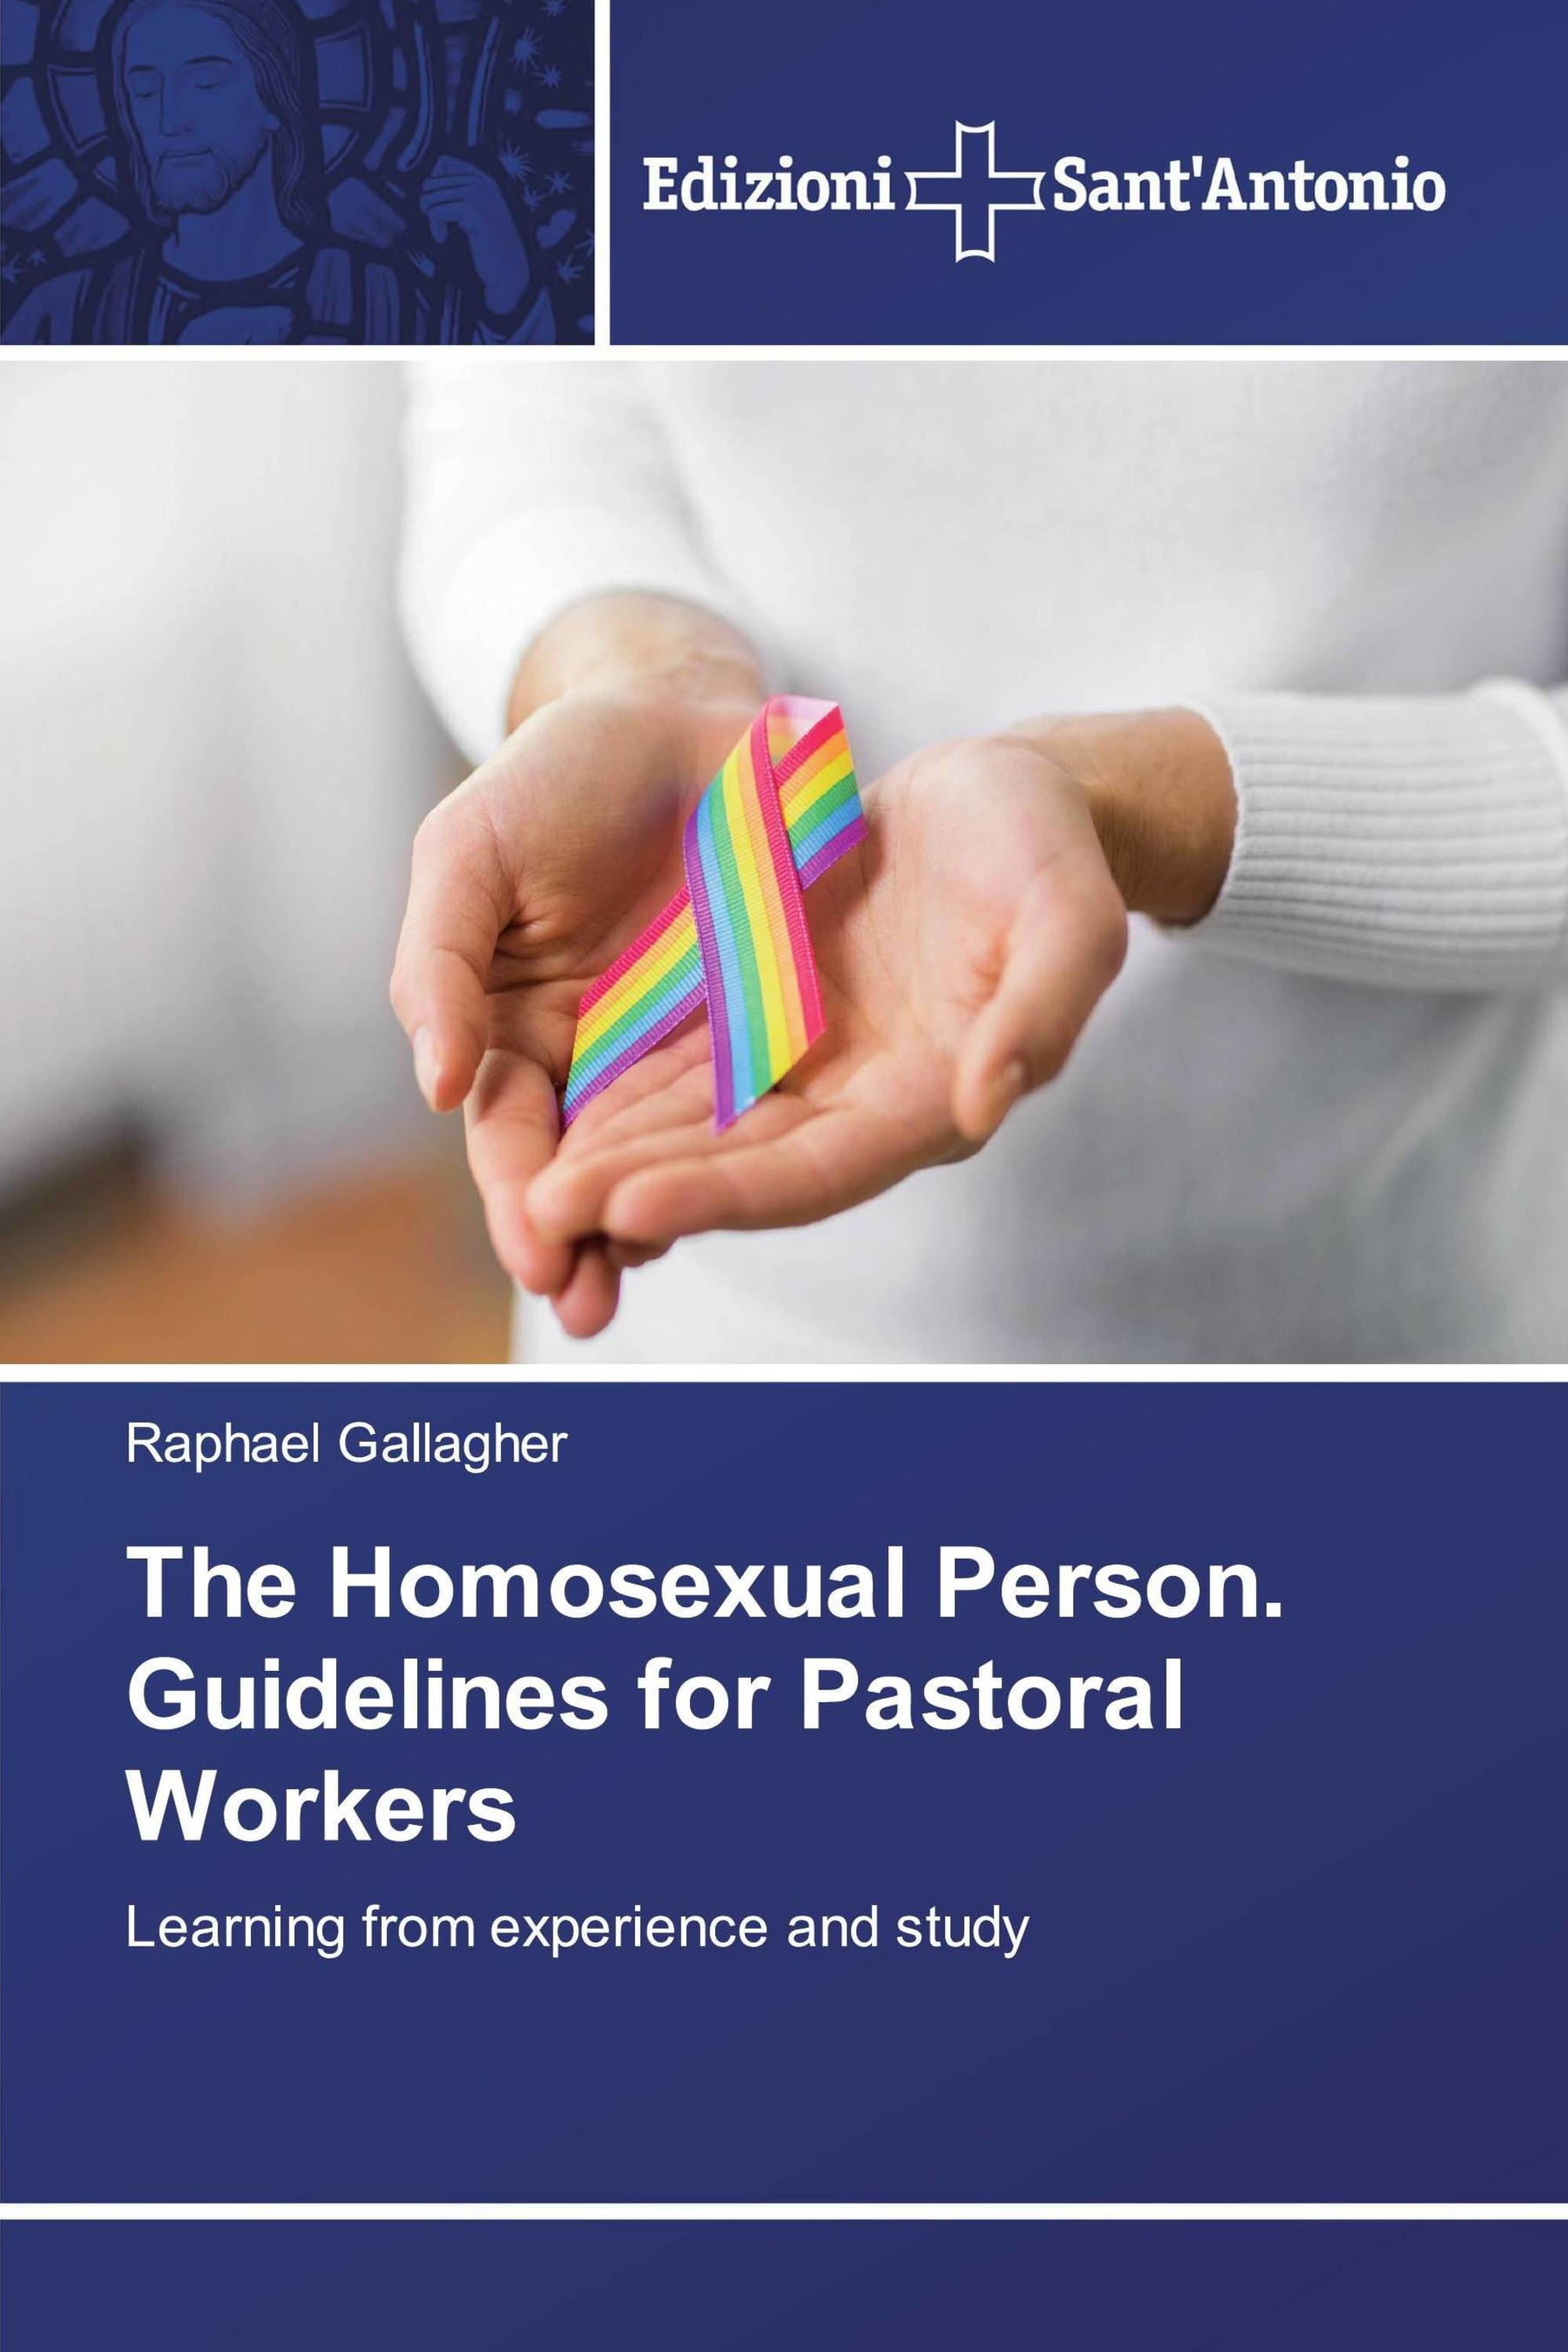 The Homosexual Person. Guidelines for Pastoral Workers